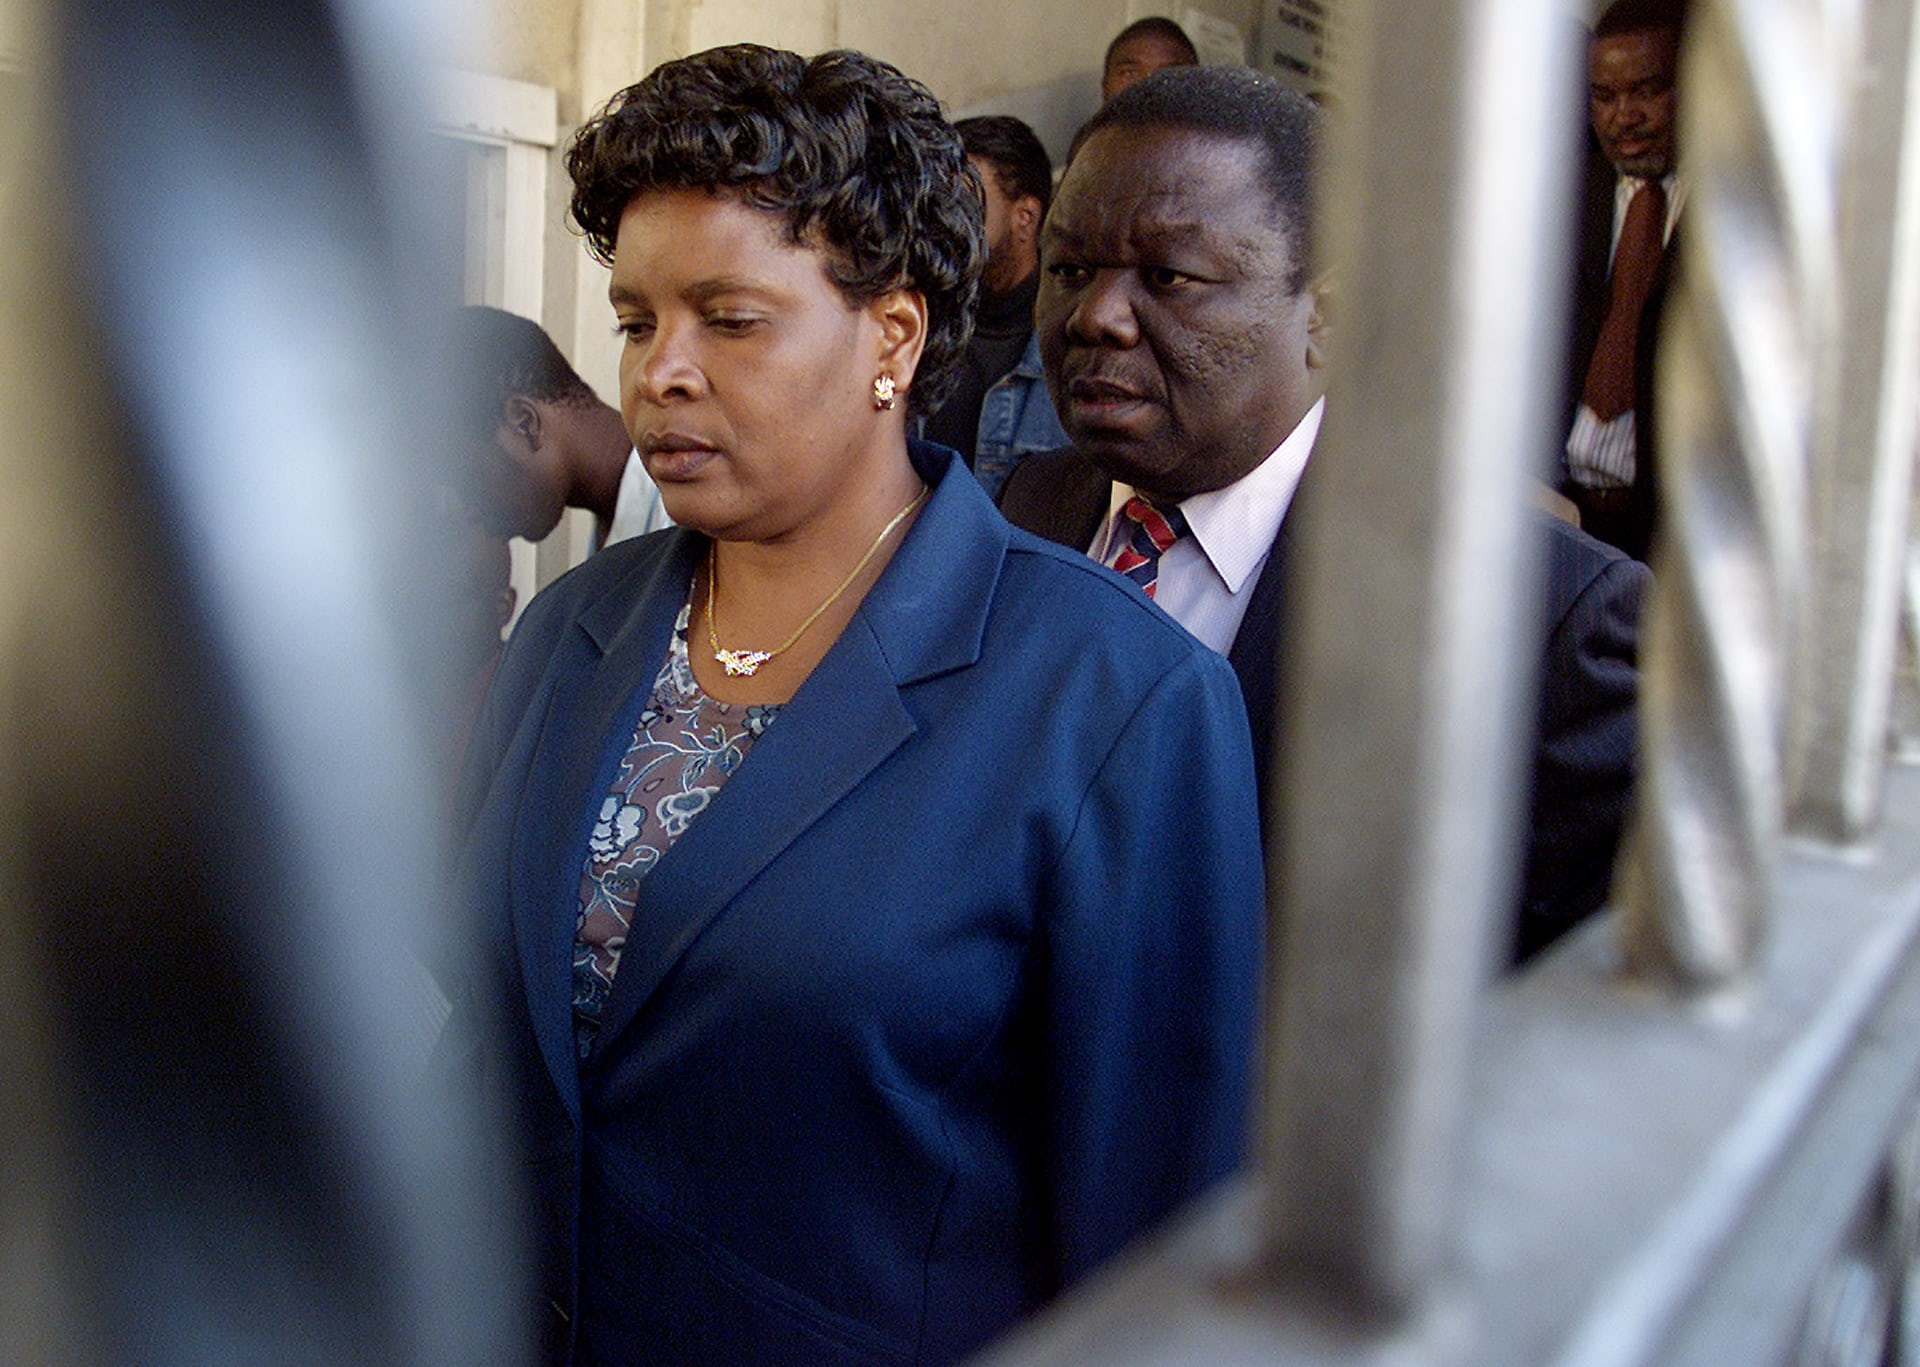 Tsvangirai arrives at the high court in Harare with his wife Susan in May 2003, facing treason charges for allegedly plotting to assassinate Mugabe.